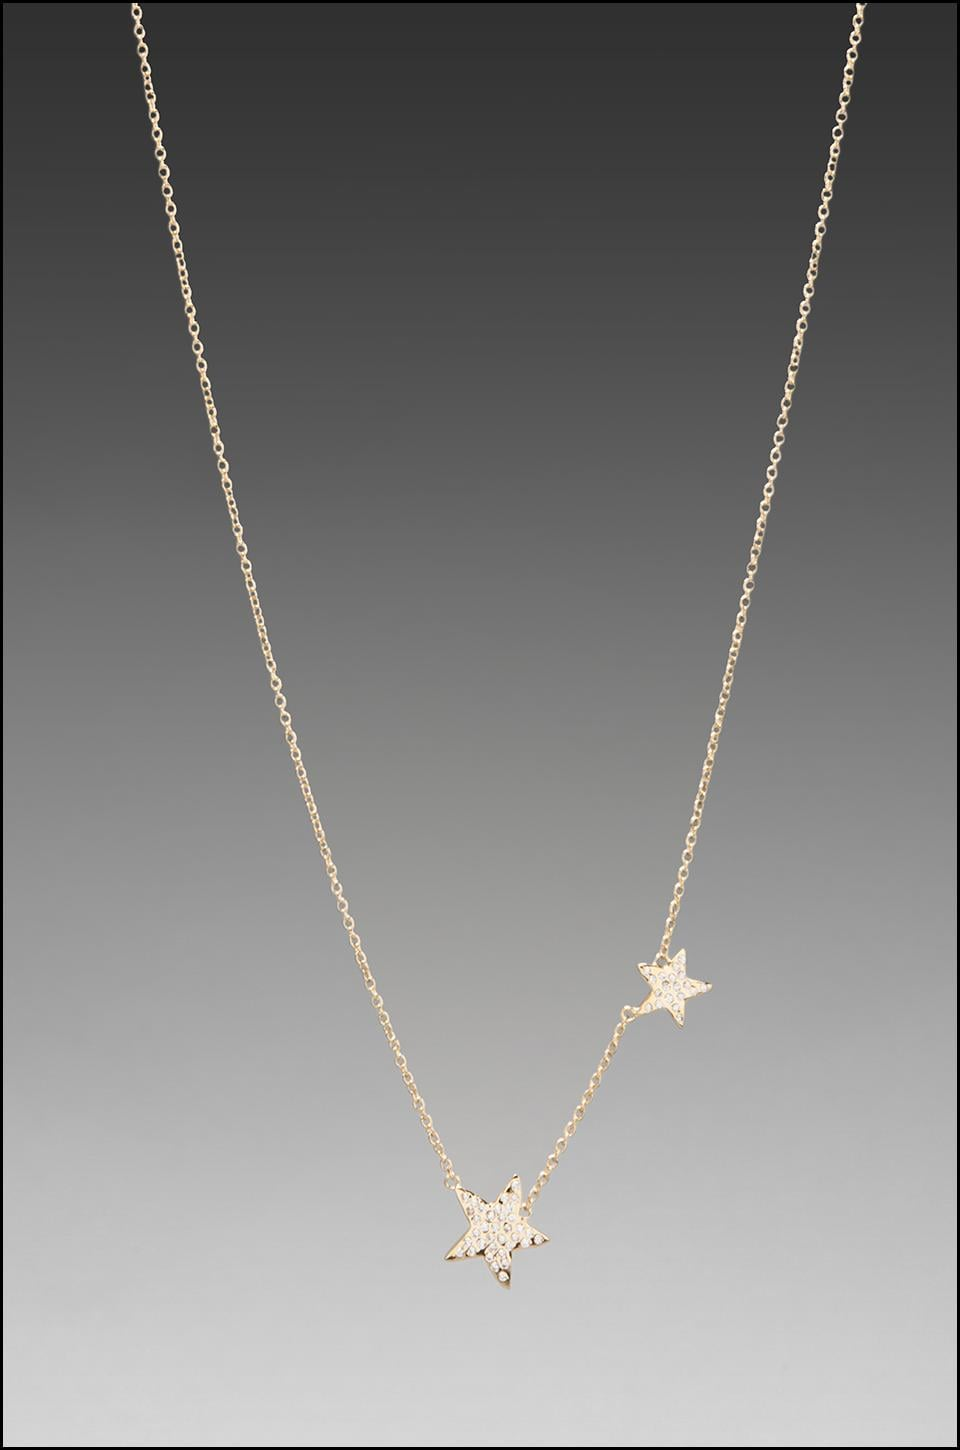 gorjana Super Star Shimmer Necklace in Gold